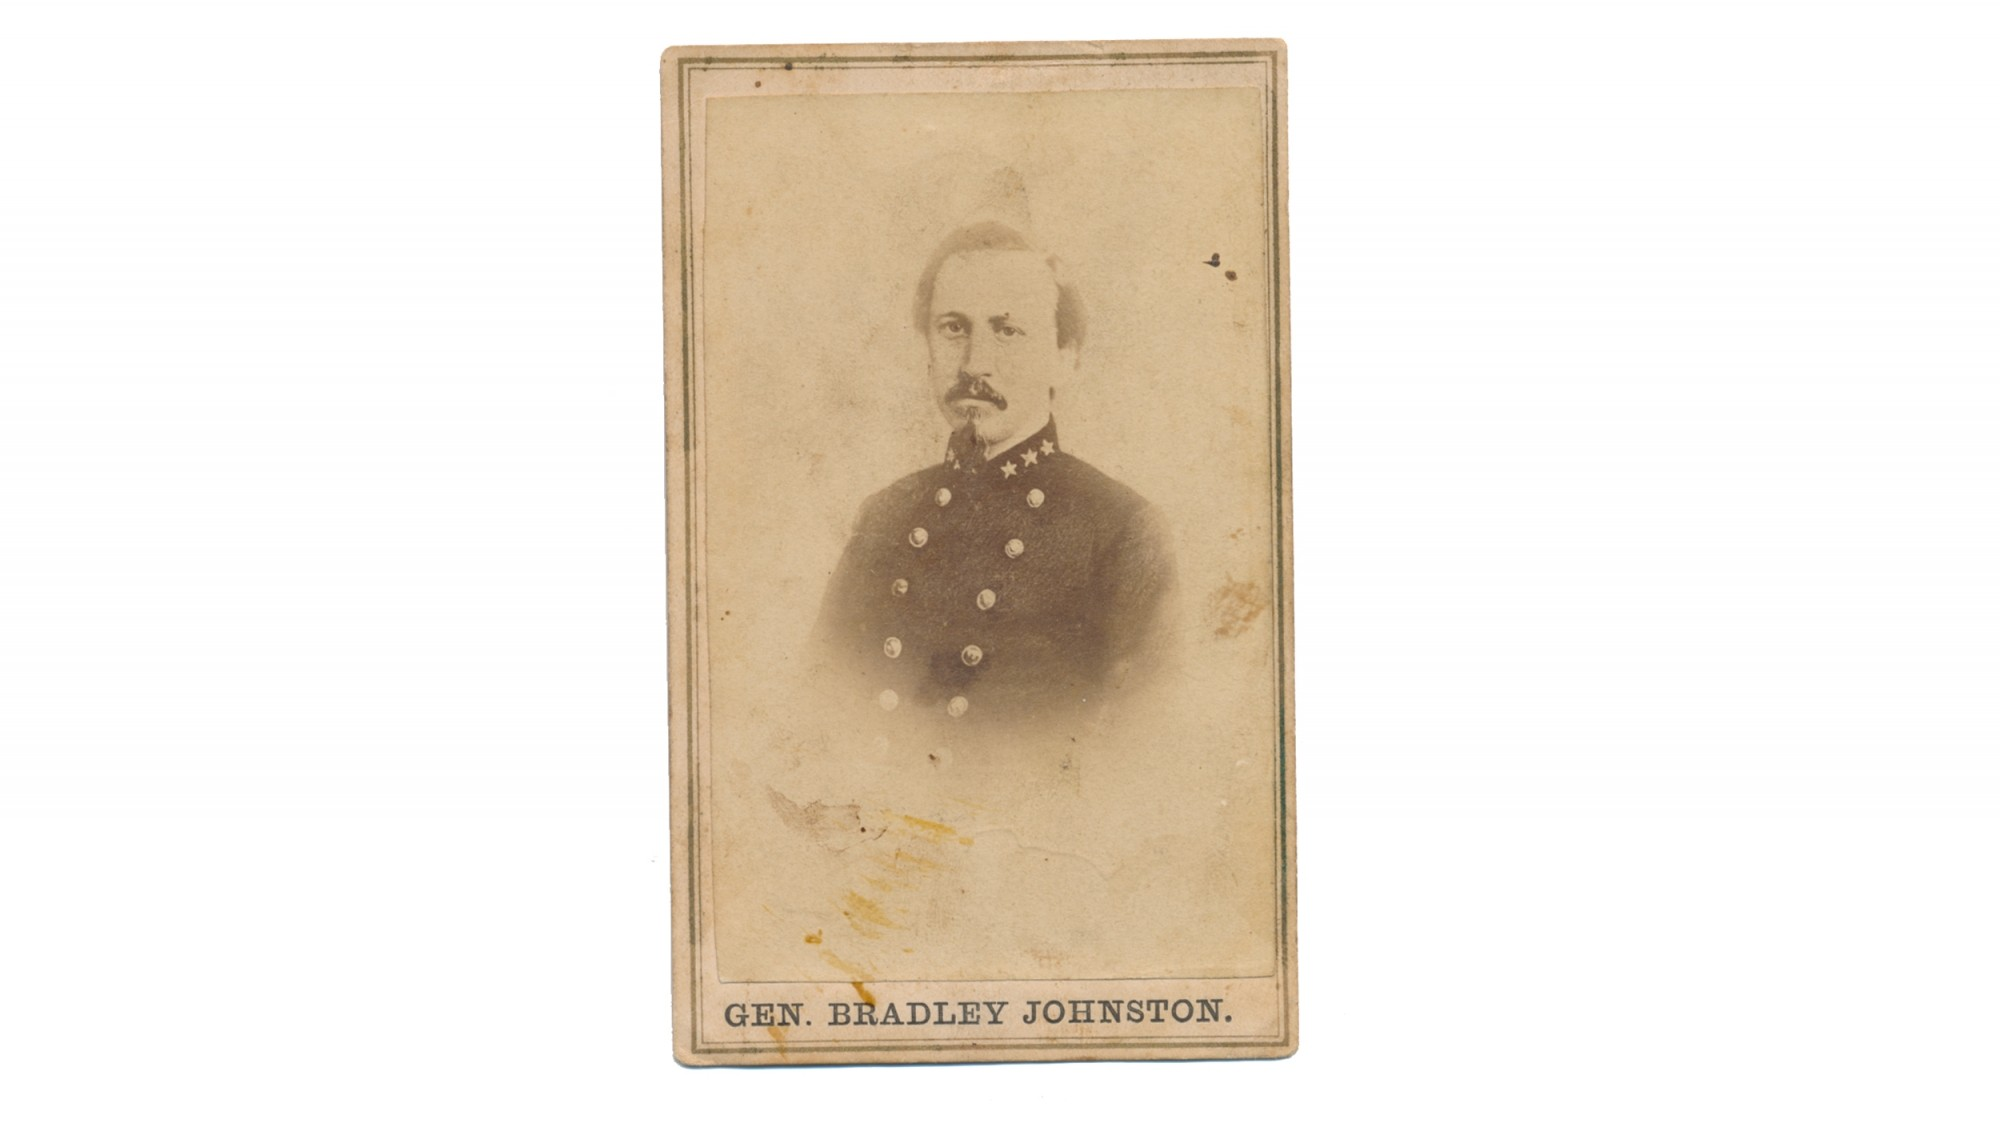 CDV PERIOD LITHOGRAPH OF CONFEDERATE GENERAL BRADLEY T. JOHNSON